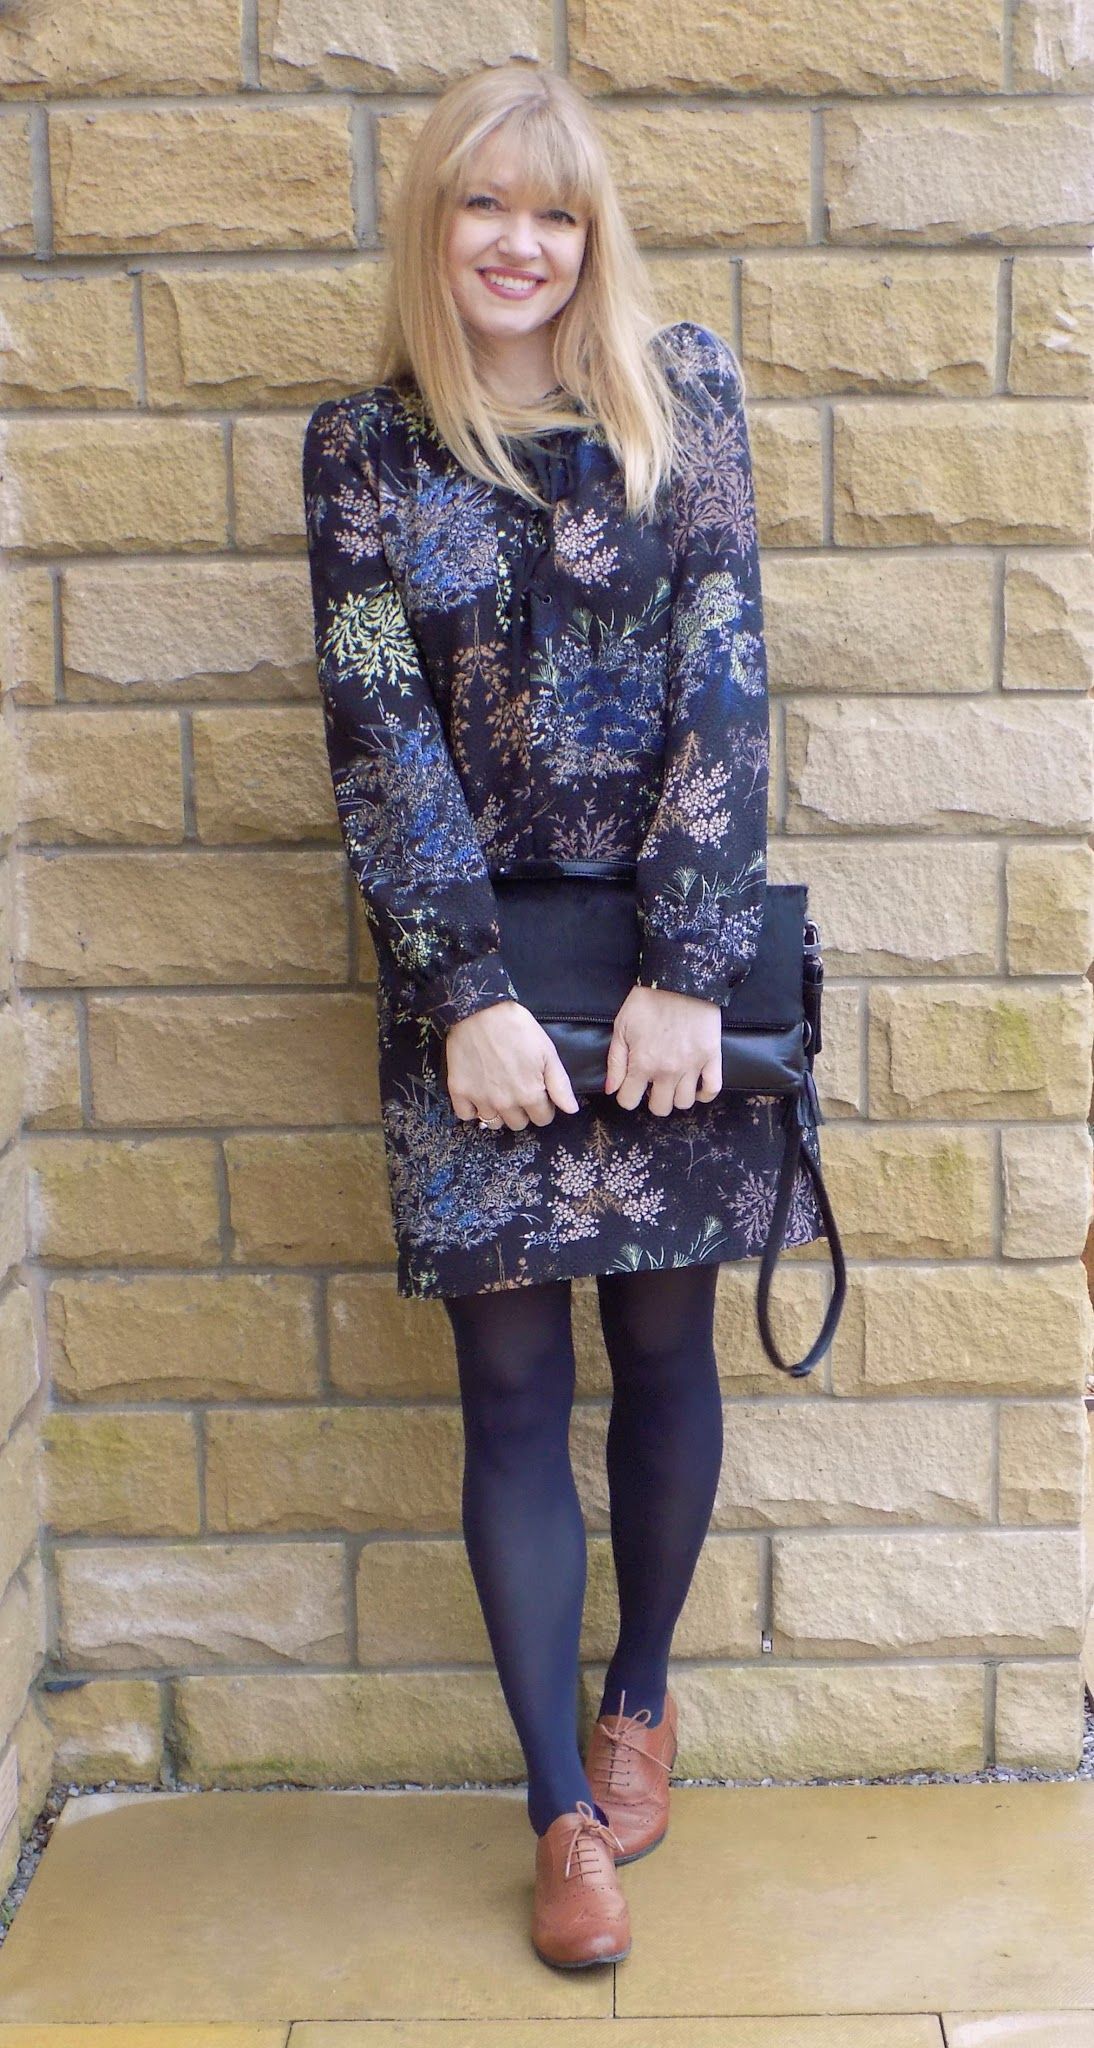 a2648789698 Lizzy styles her Clarks brogues with a day dress and tights http   www